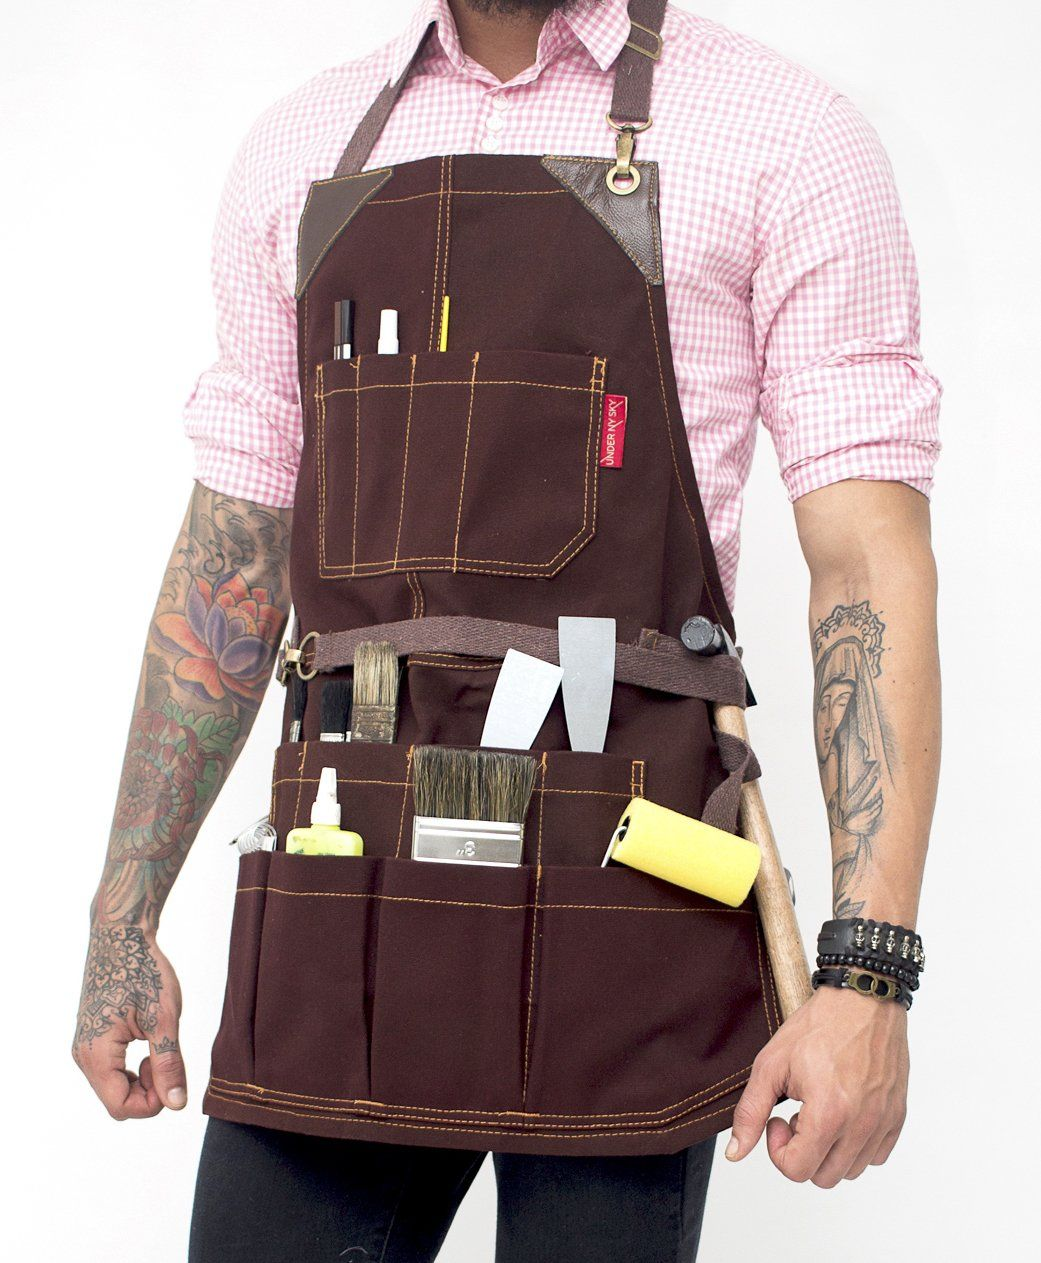 tool apron - brown waxed canvas, leather trim, 12 pockets